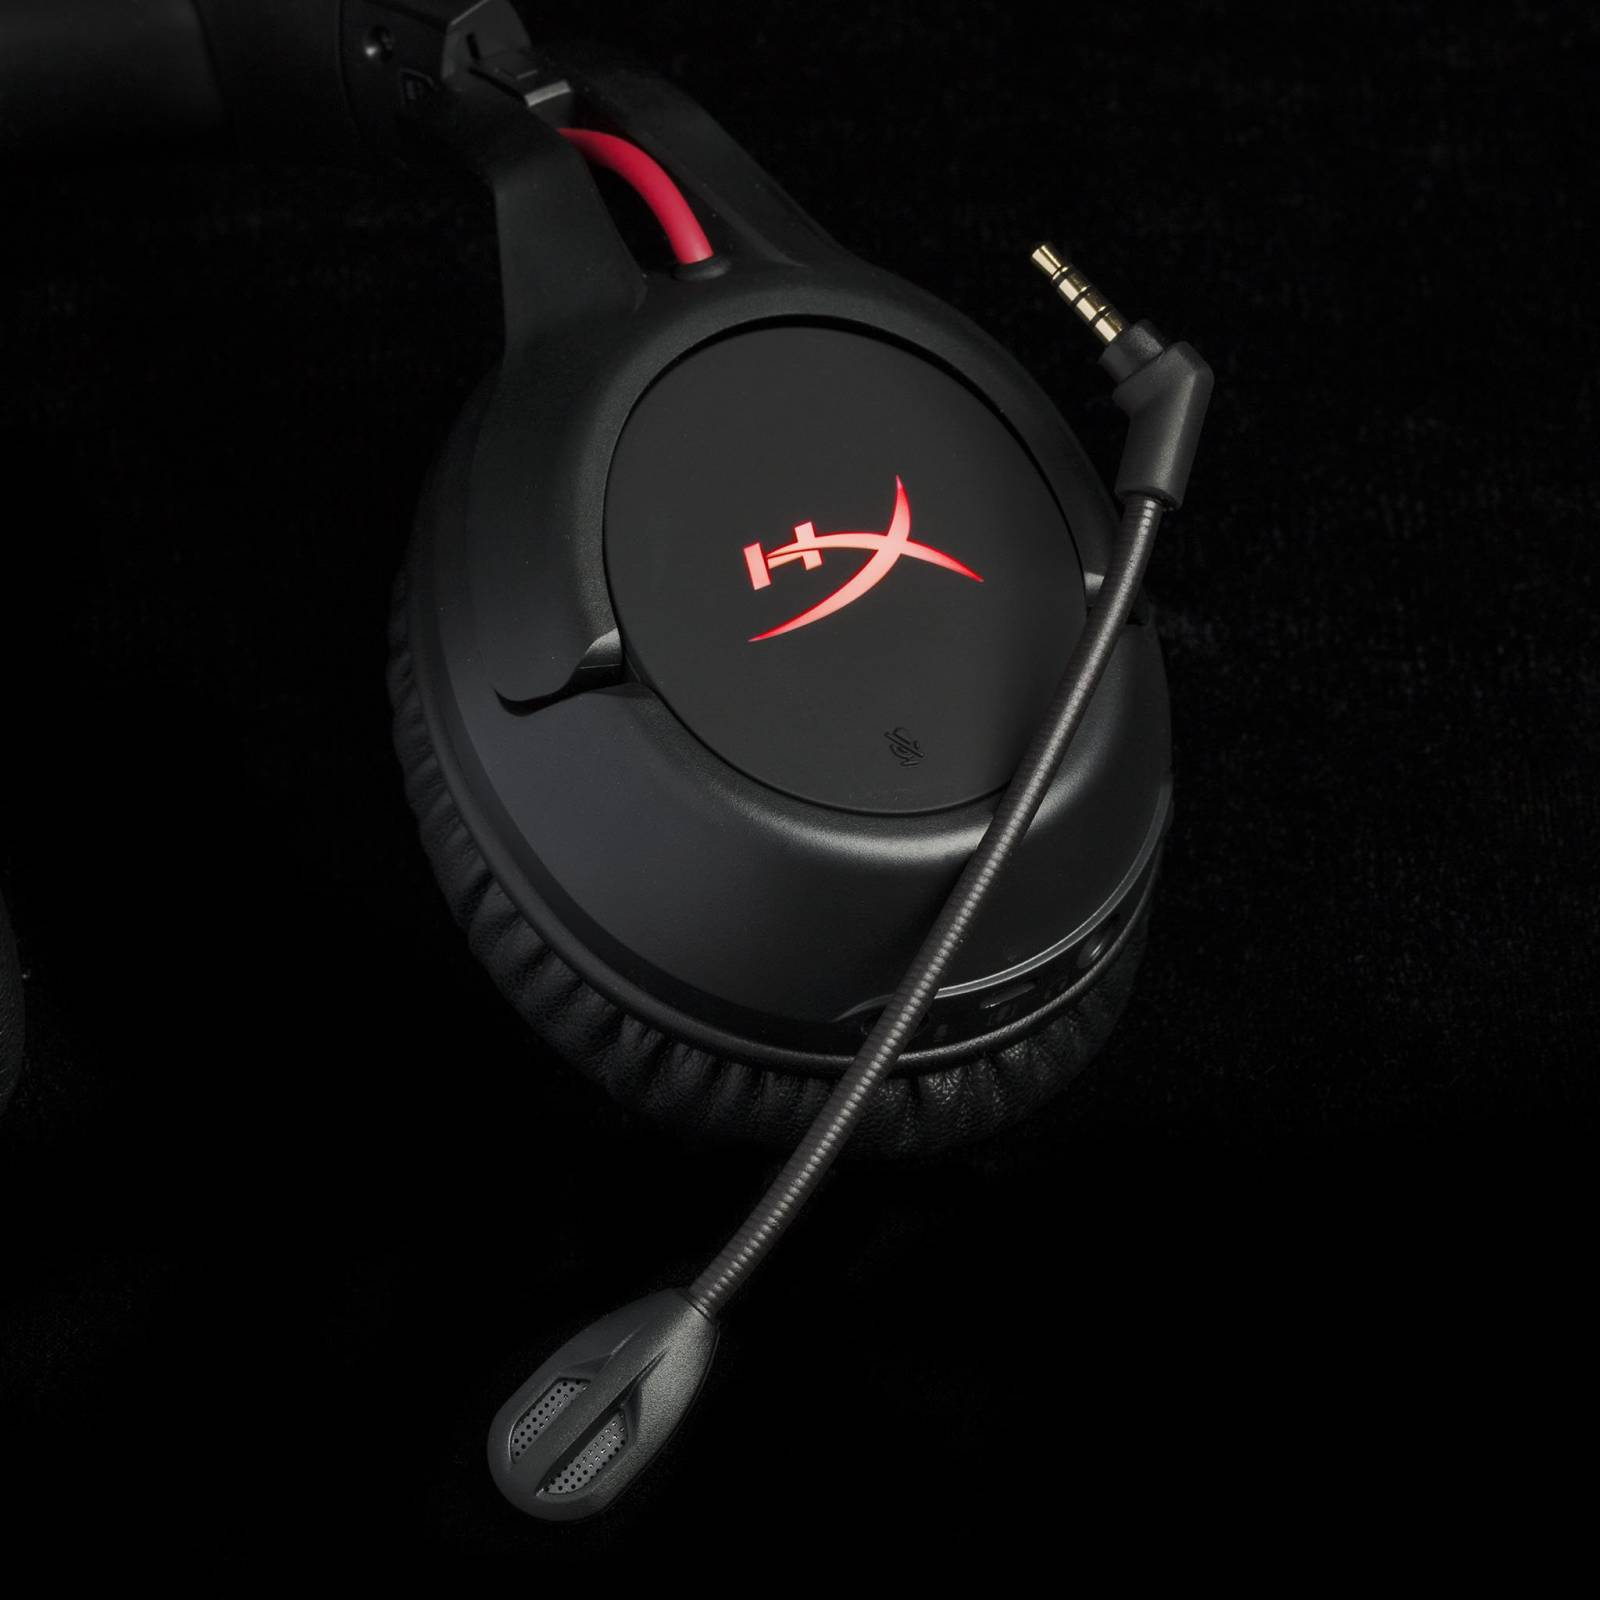 HyperX detachedable microphone